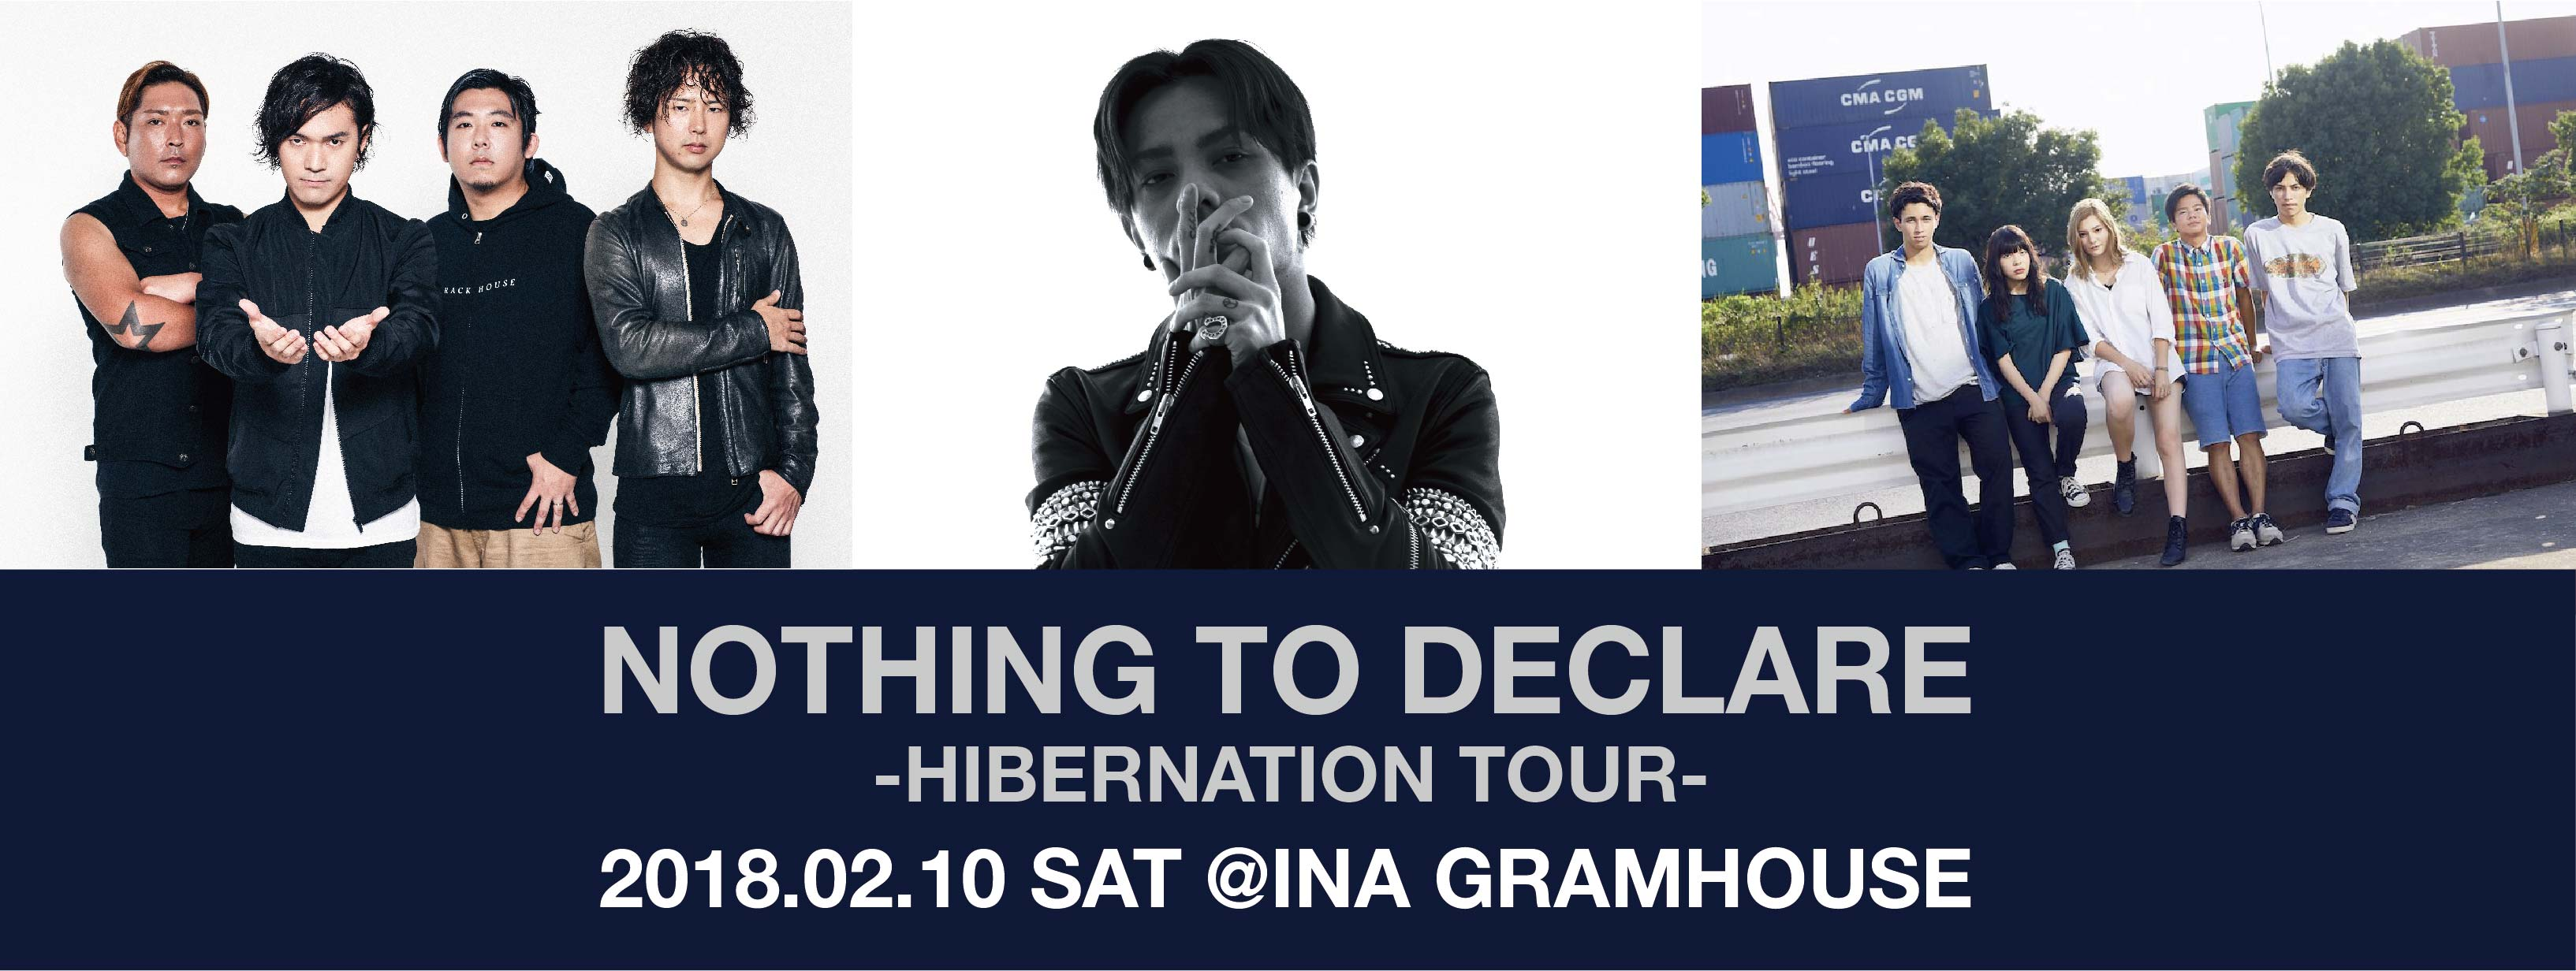 NOTHING TO DECLARE -HIBERNATION TOUR-